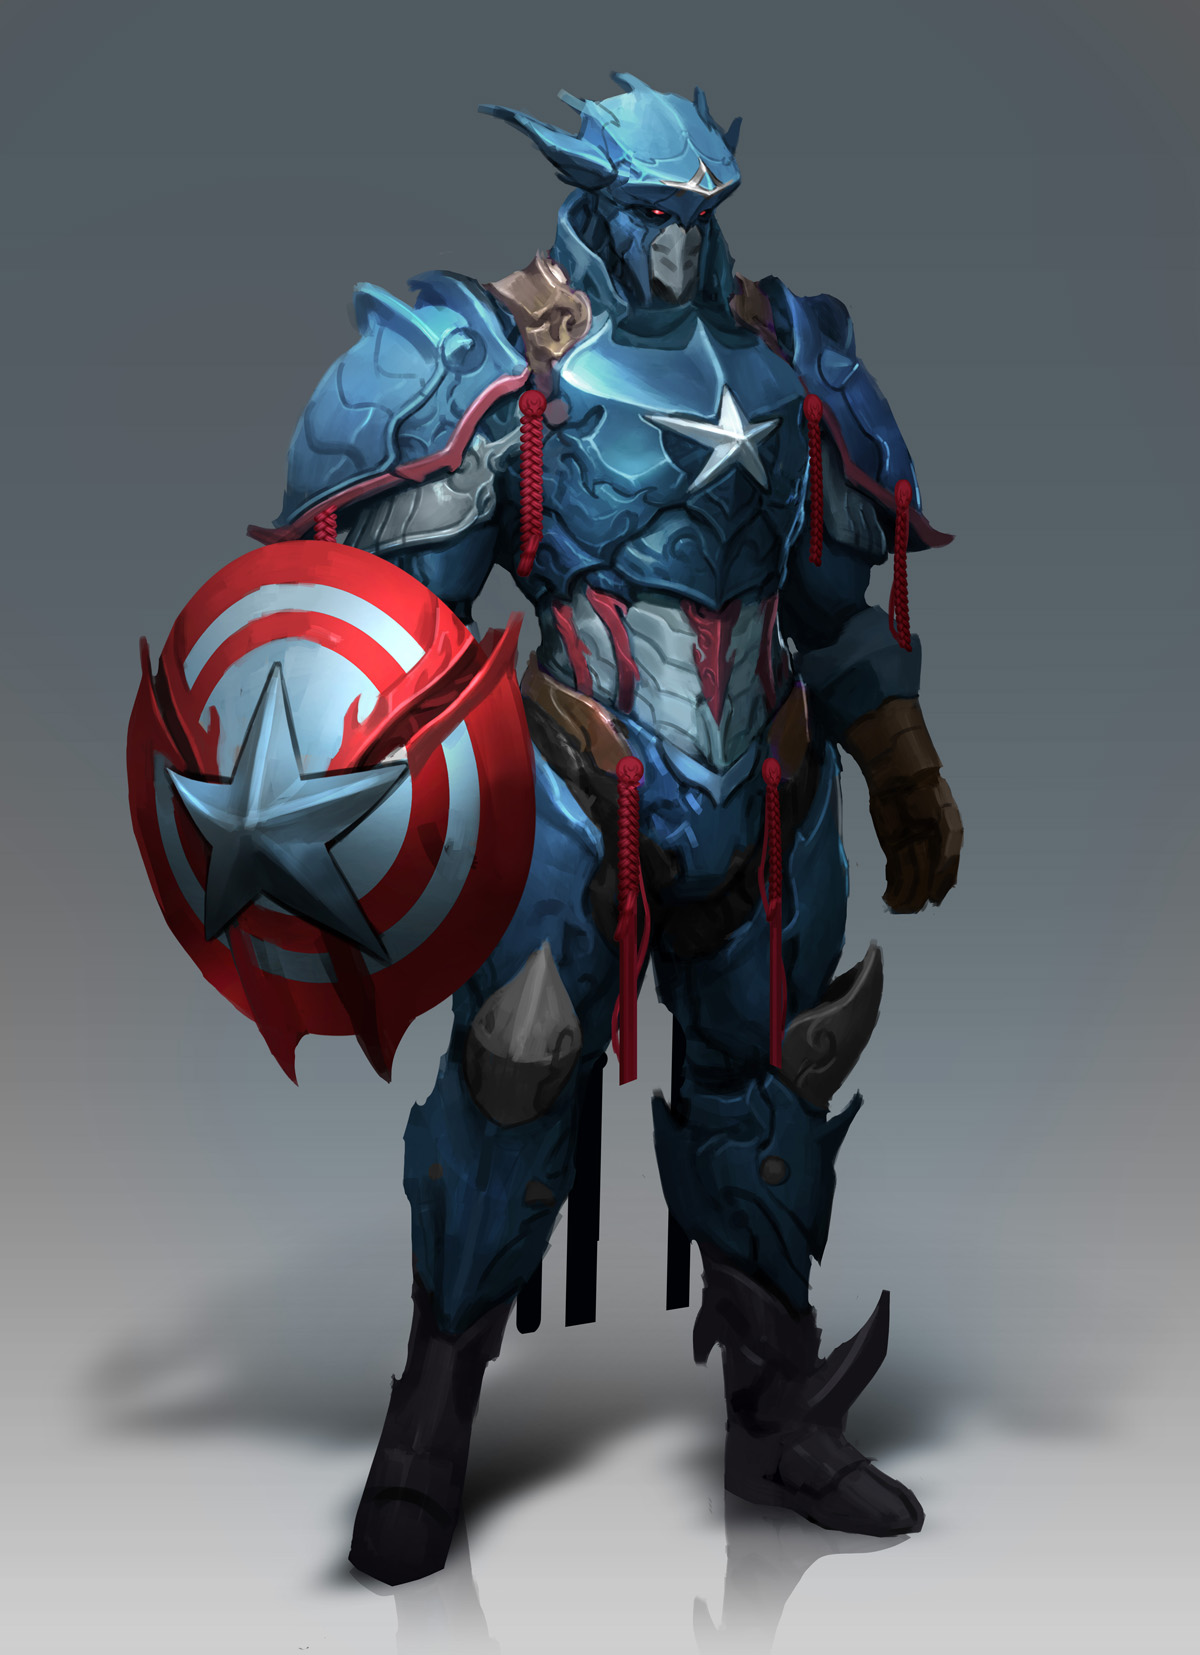 captain america by reza ilyasa imaginarycharacters. Black Bedroom Furniture Sets. Home Design Ideas